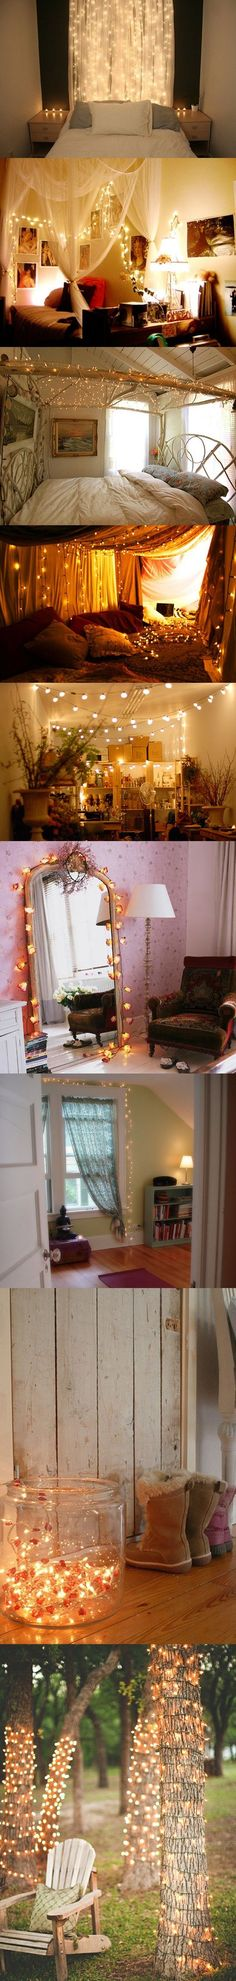 Fairy Lights Decorating Ideas @ DIY Home Design